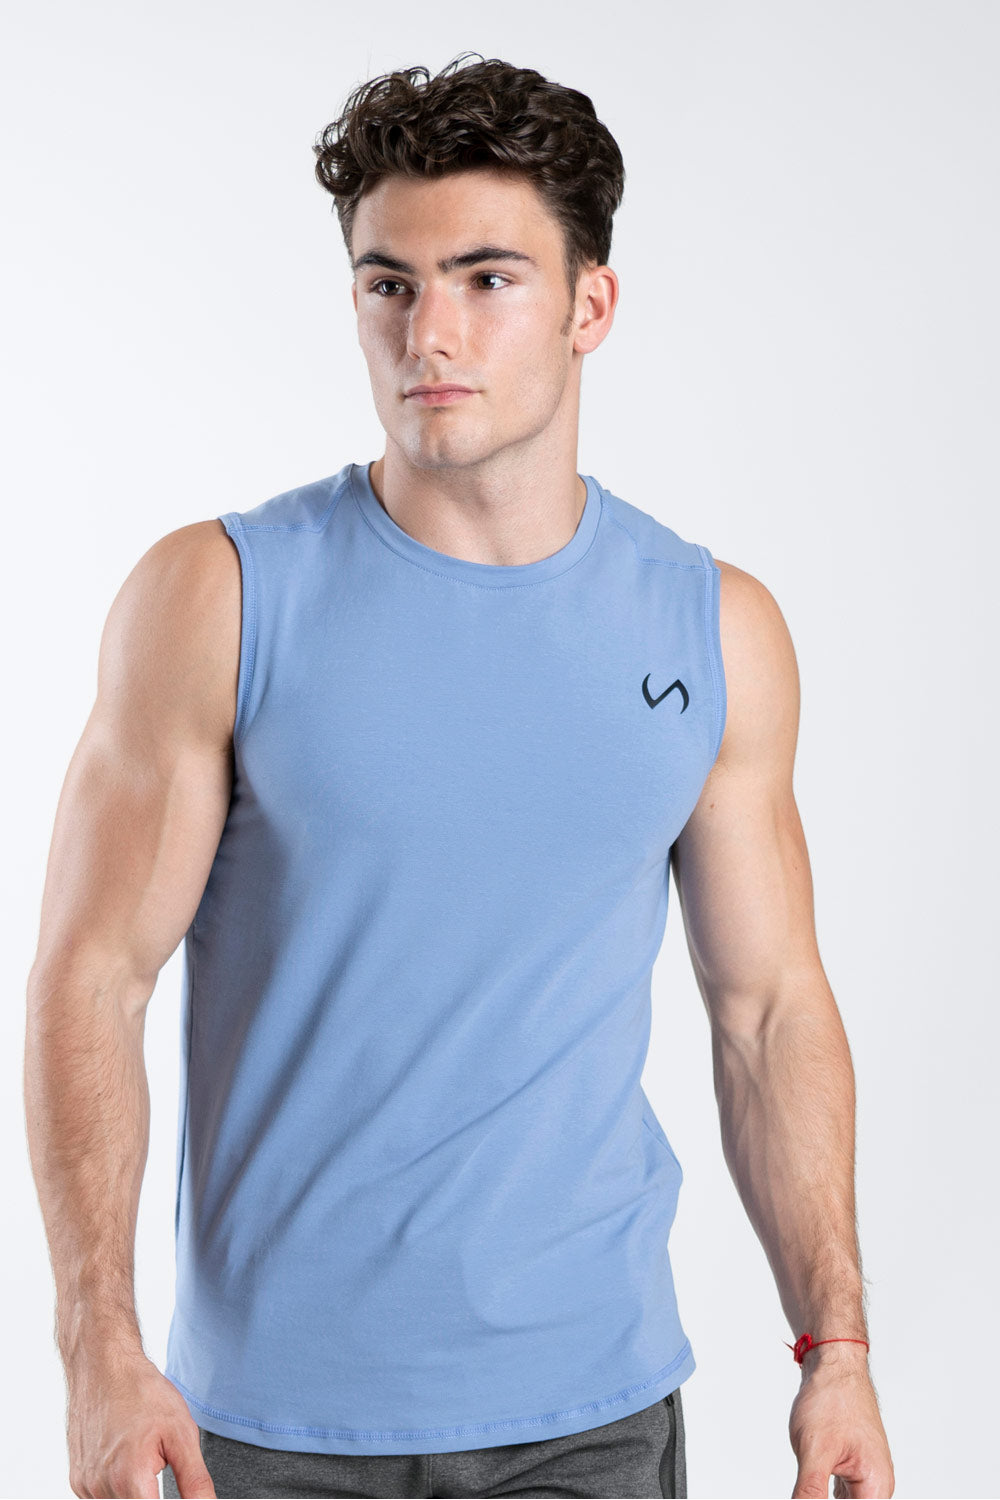 TLF Taurus Sleeveless Crew - Tank TLF Apparel | Take Life Further